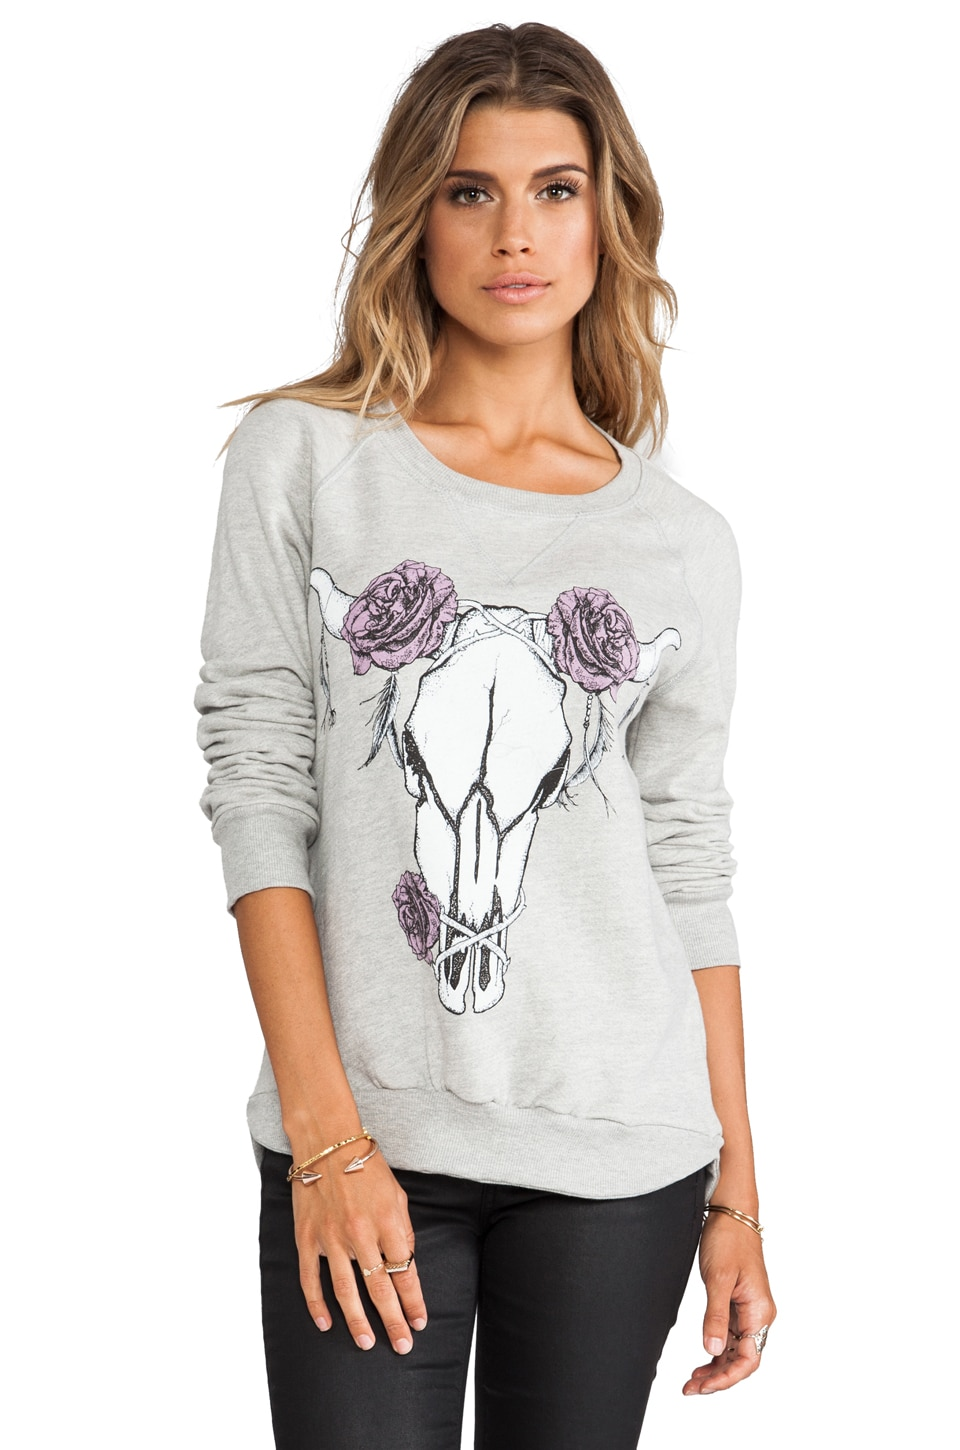 291 Bull Rose Pullover Sweatshirt in Heather Grey